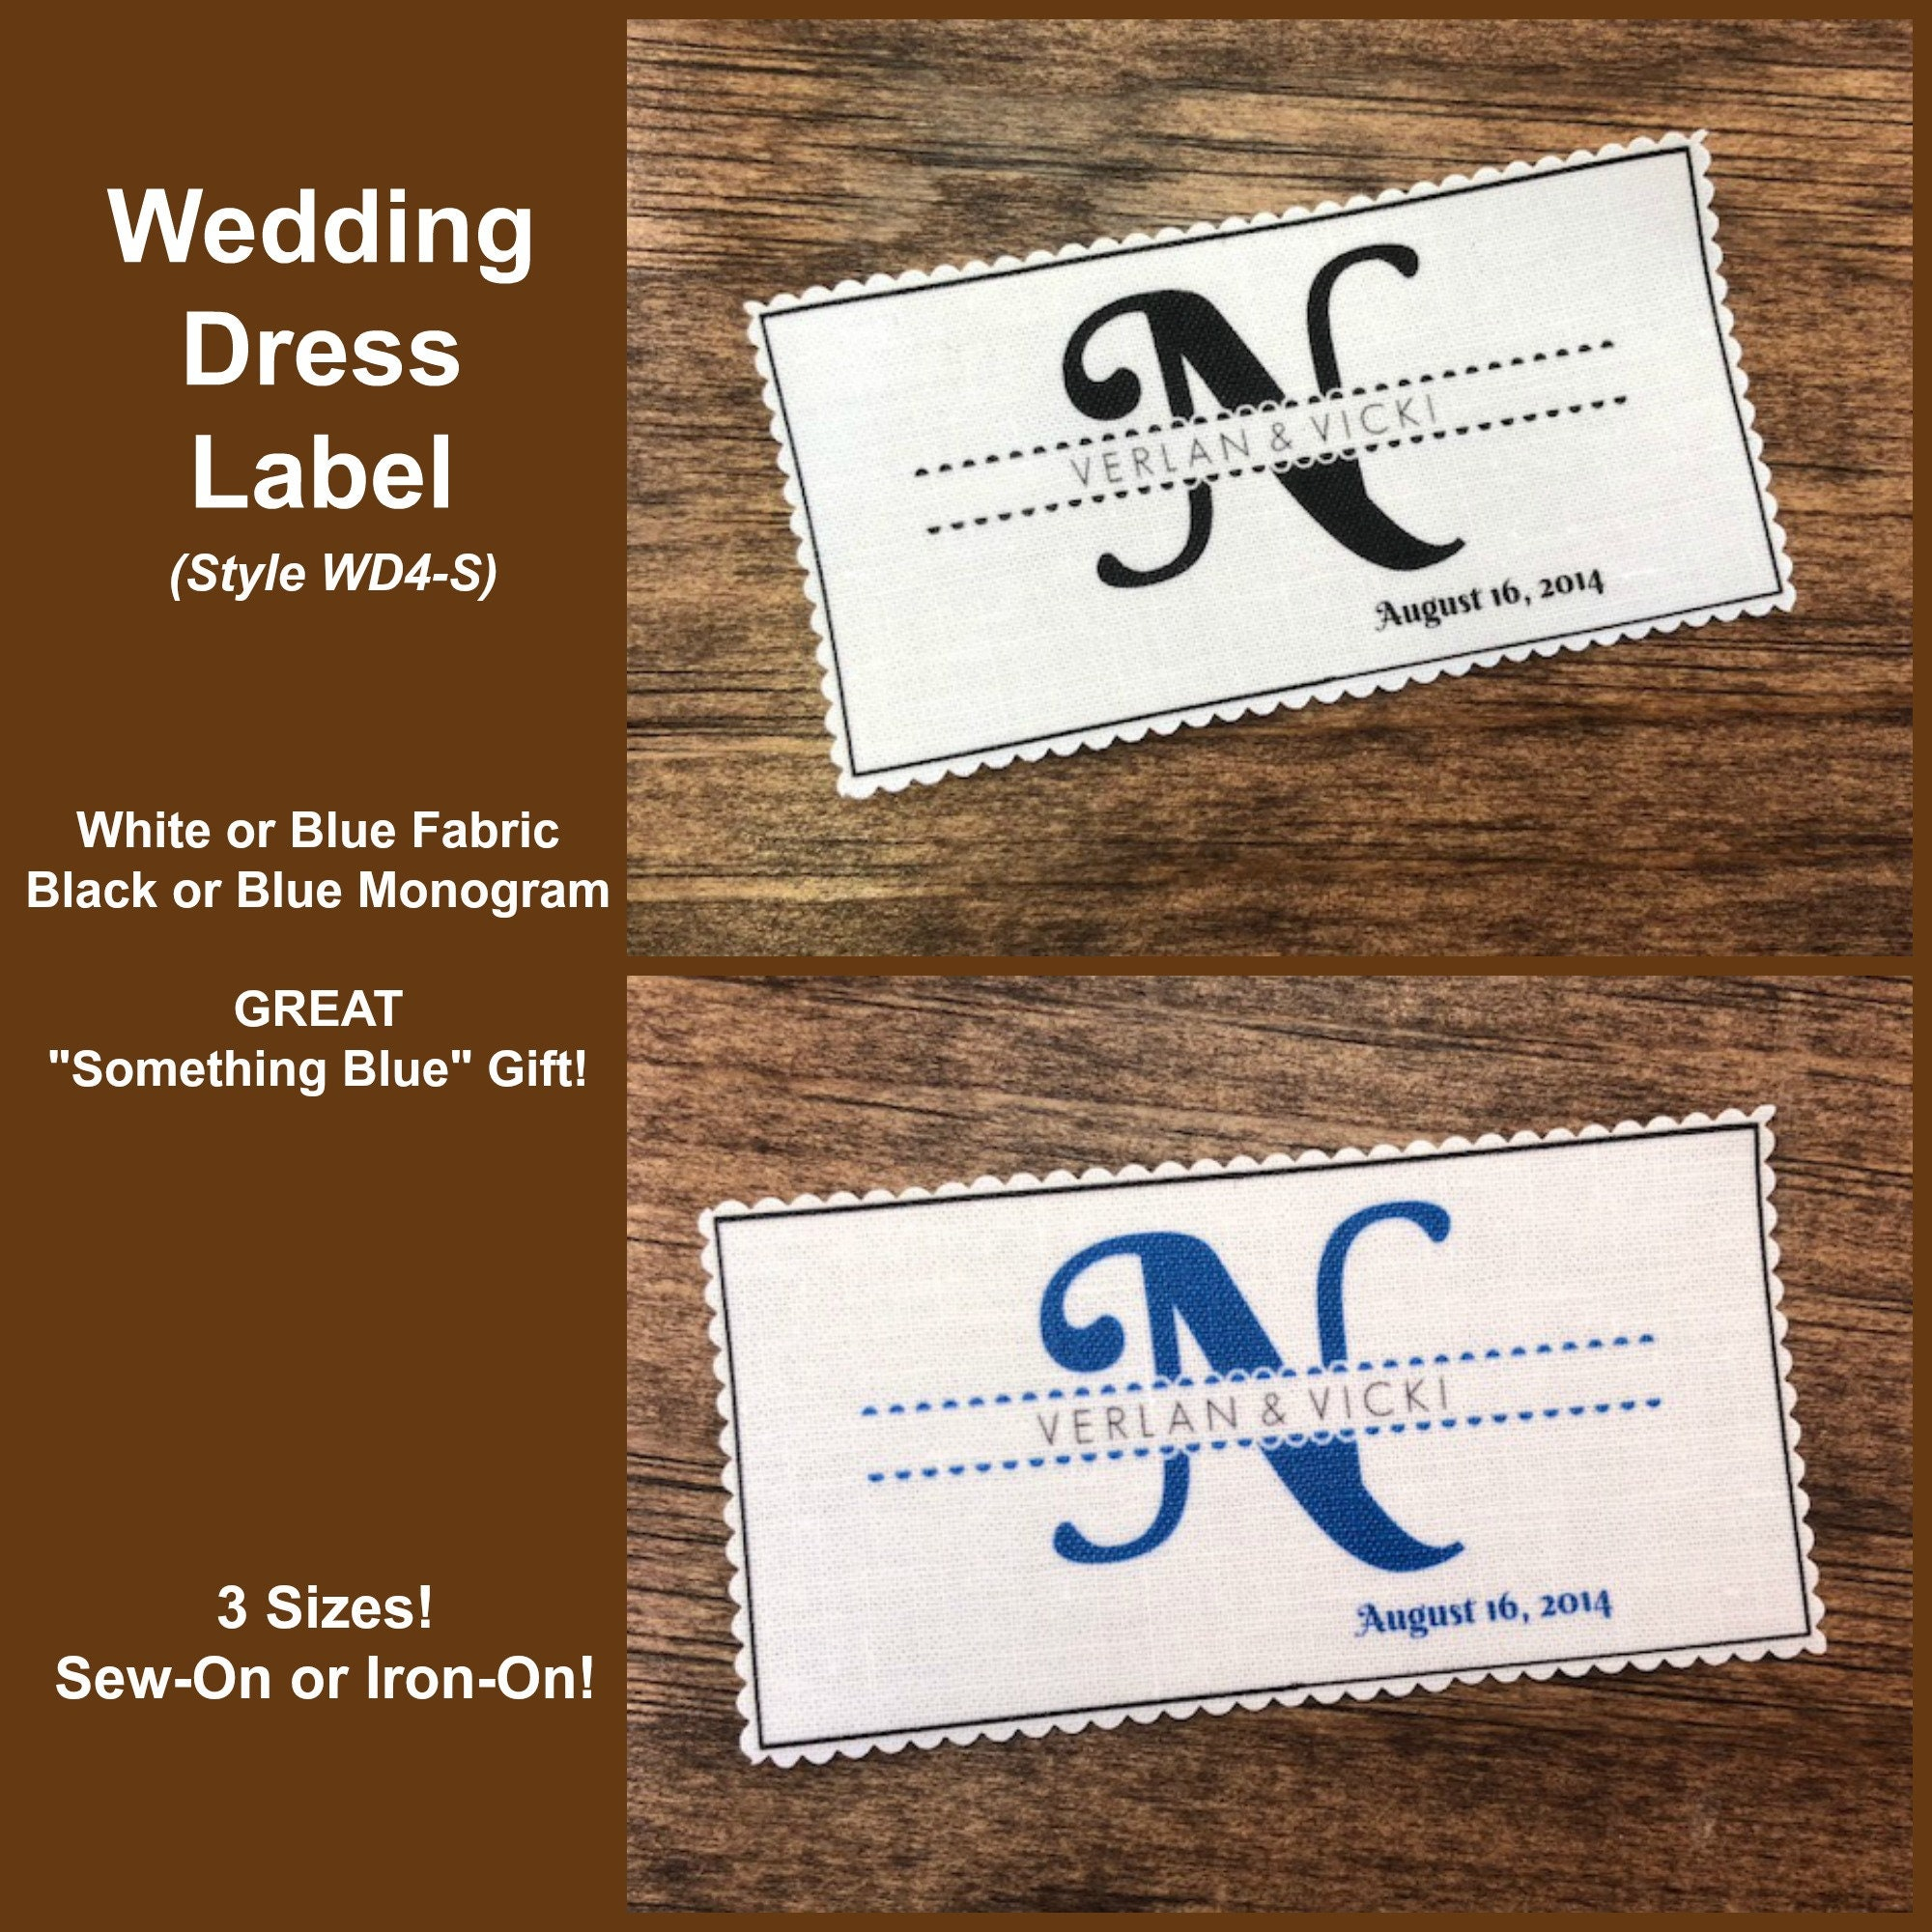 Something Blue Bridal Gift Dress Label Dress Tag Monogram Label